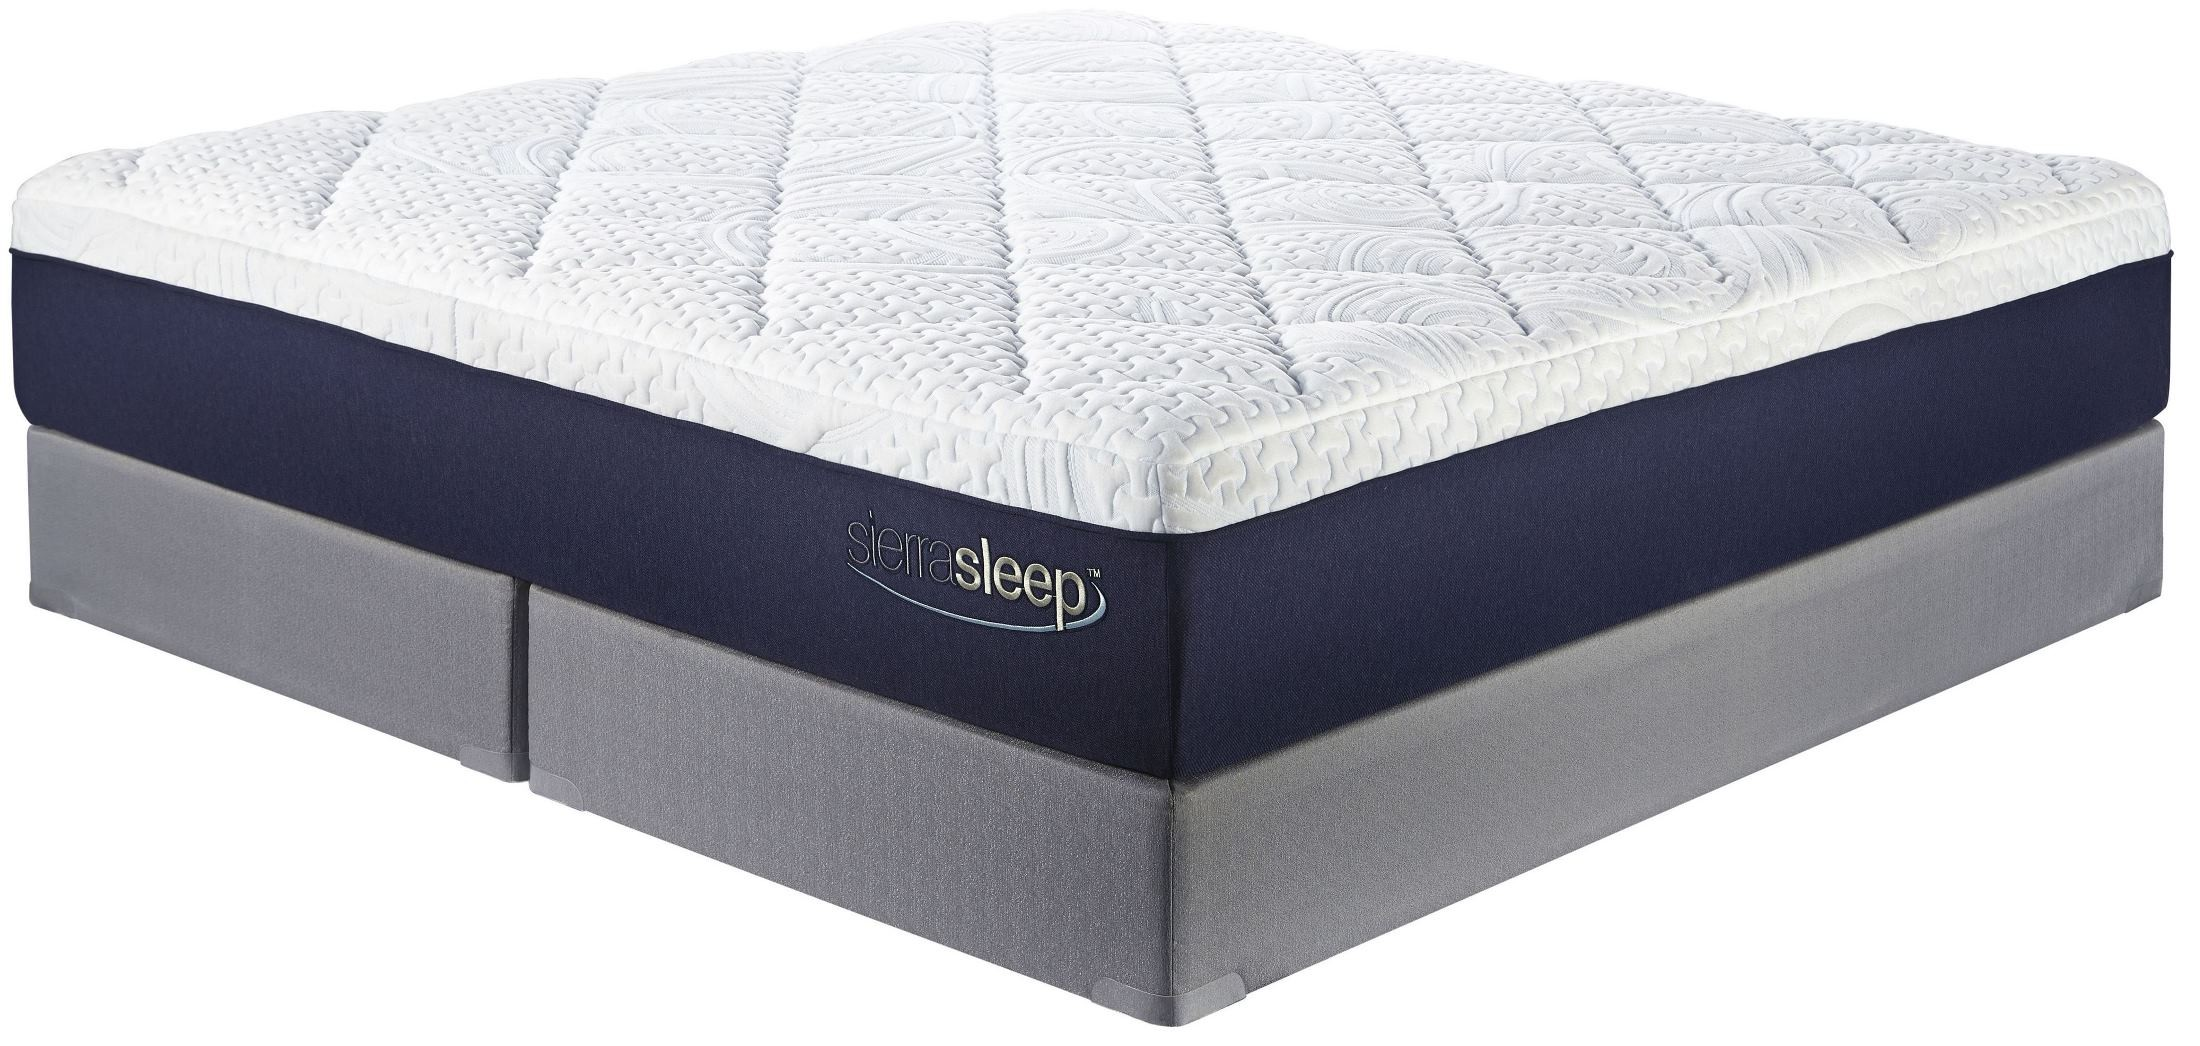 13 Inch Gel Memory Foam White King Mattress From Ashley M97441 Coleman Furniture